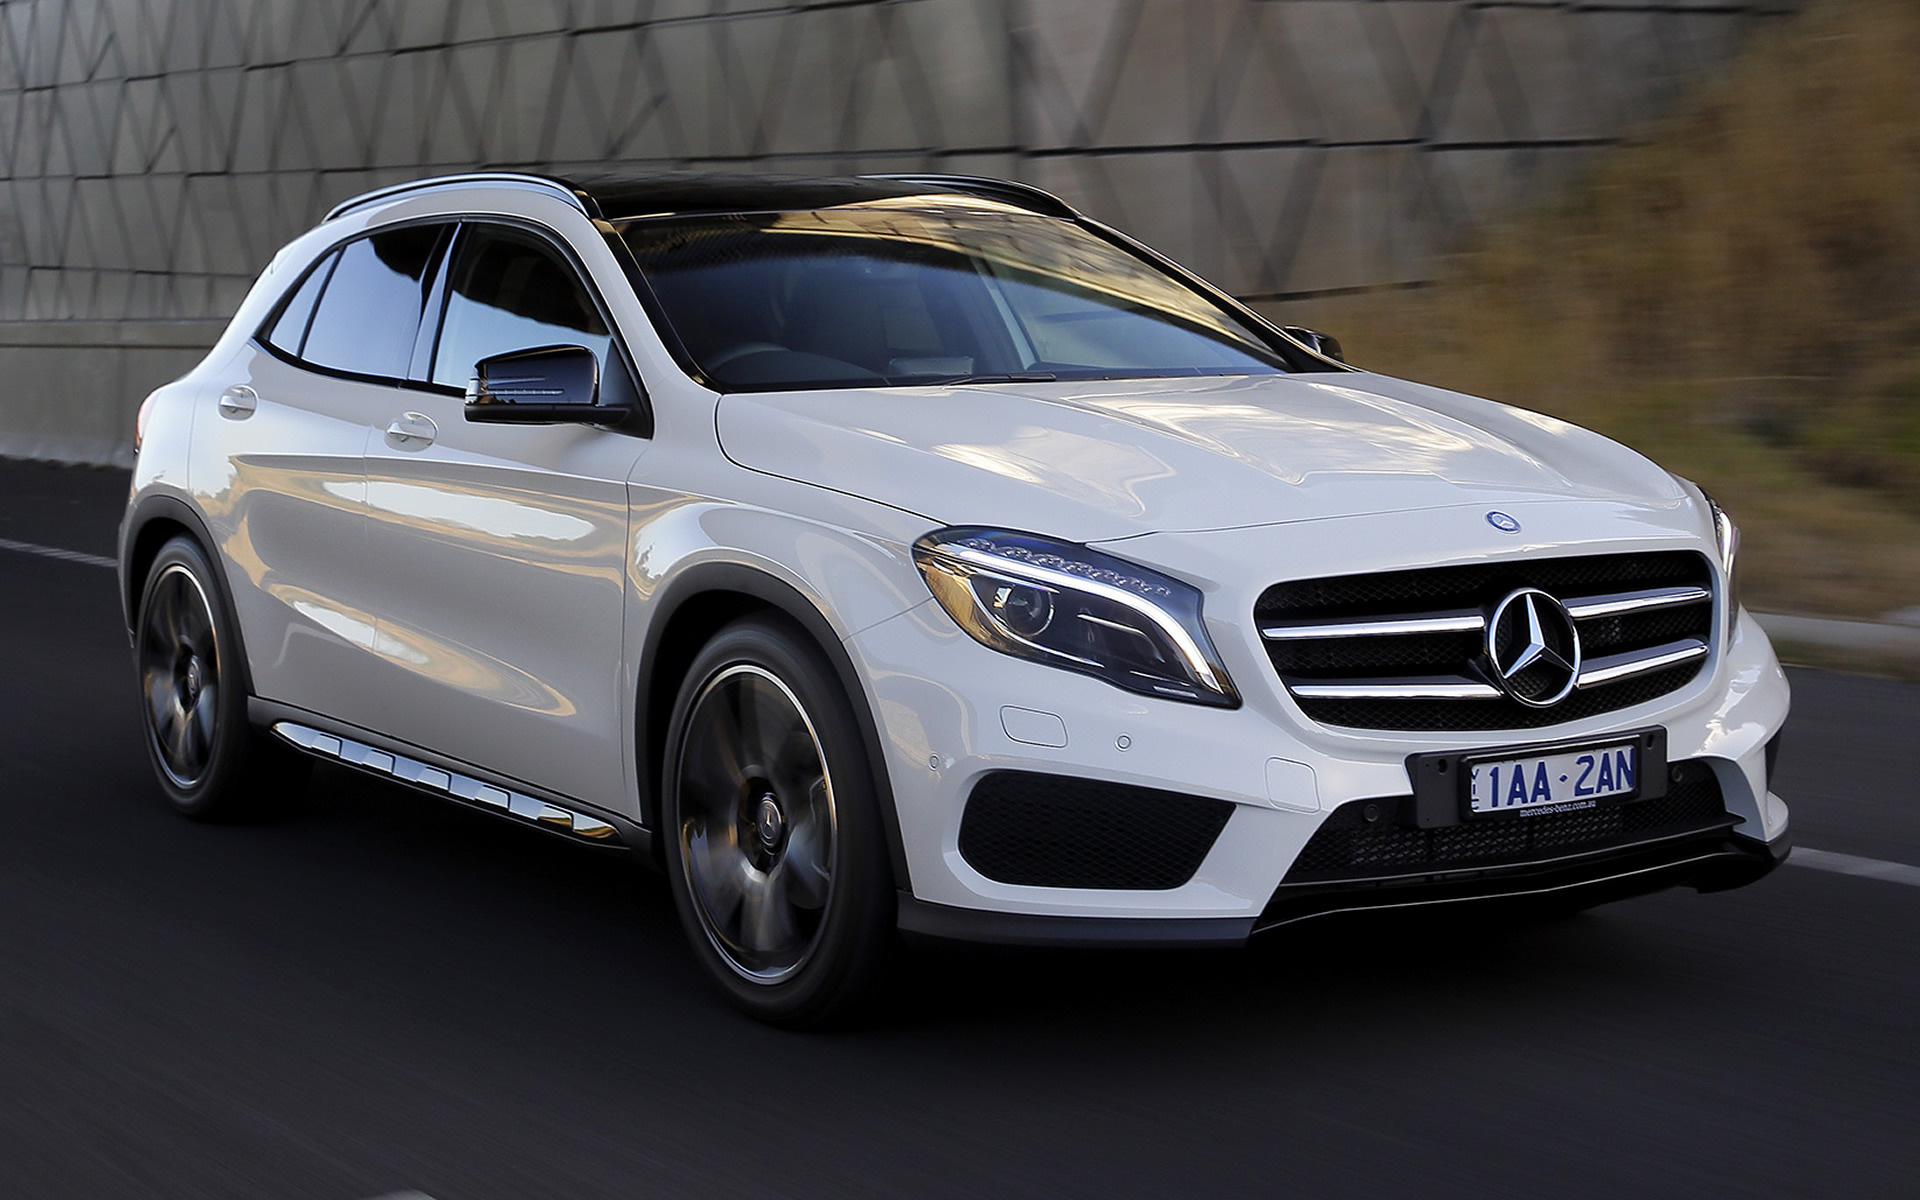 mercedes benz gla class amg line 2014 au wallpapers and hd images car pixel. Black Bedroom Furniture Sets. Home Design Ideas